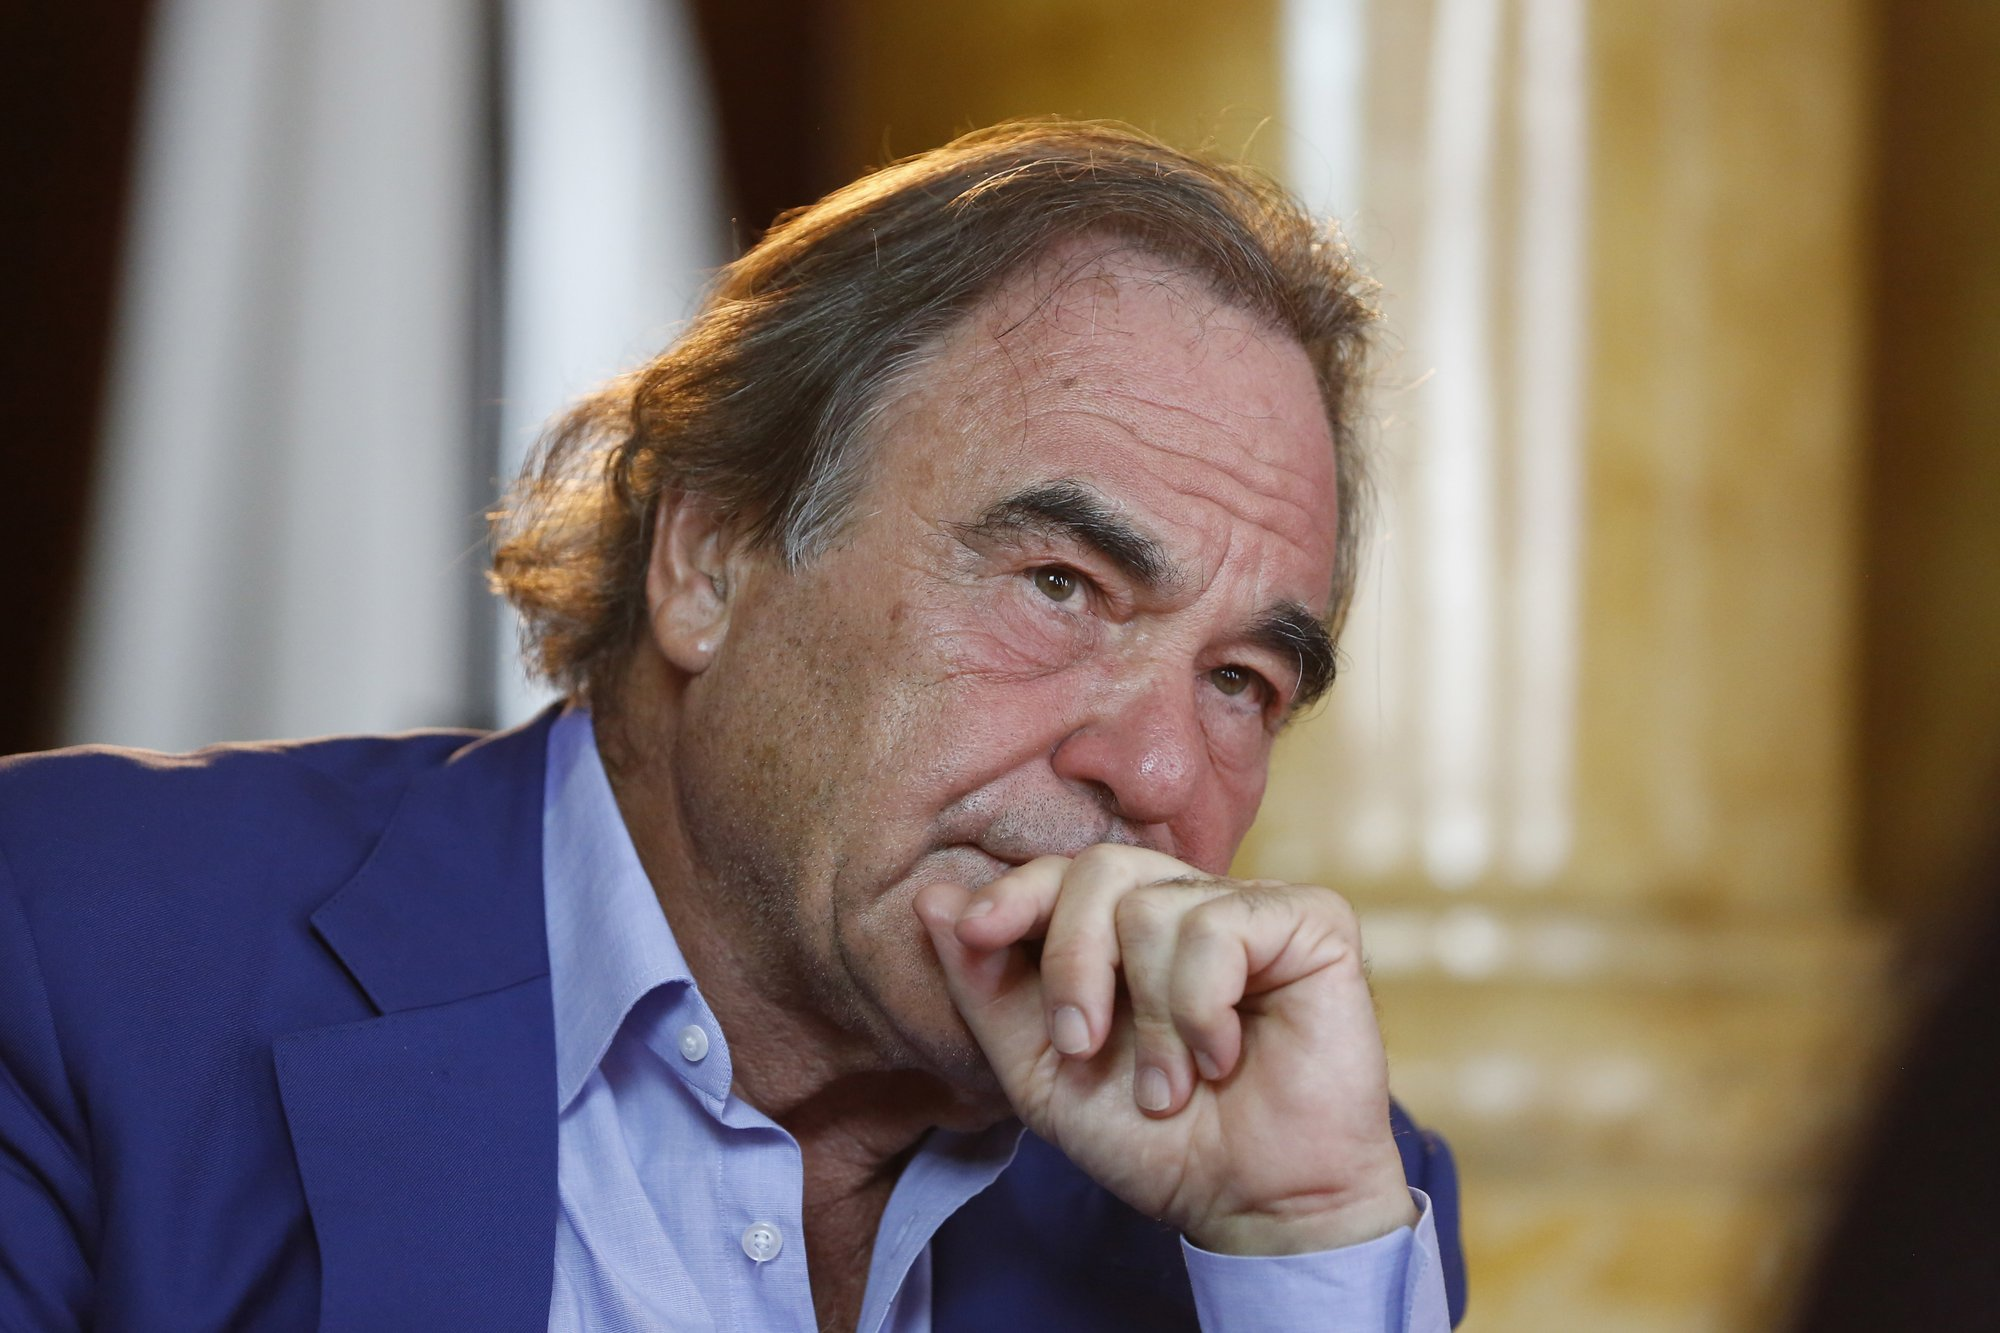 Oliver Stone writing memoir, scheduled for 2020